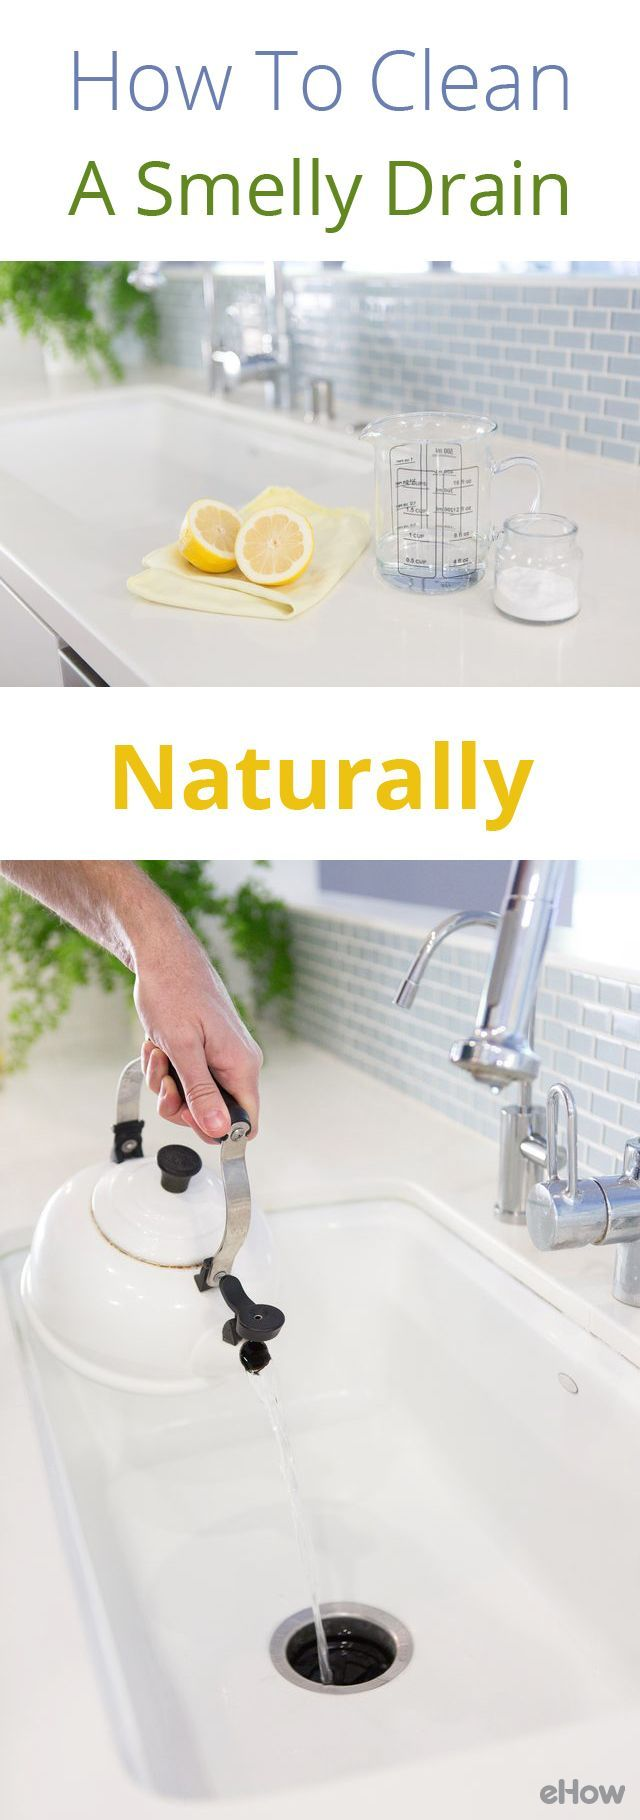 How To Naturally Clean A Smelly Drain